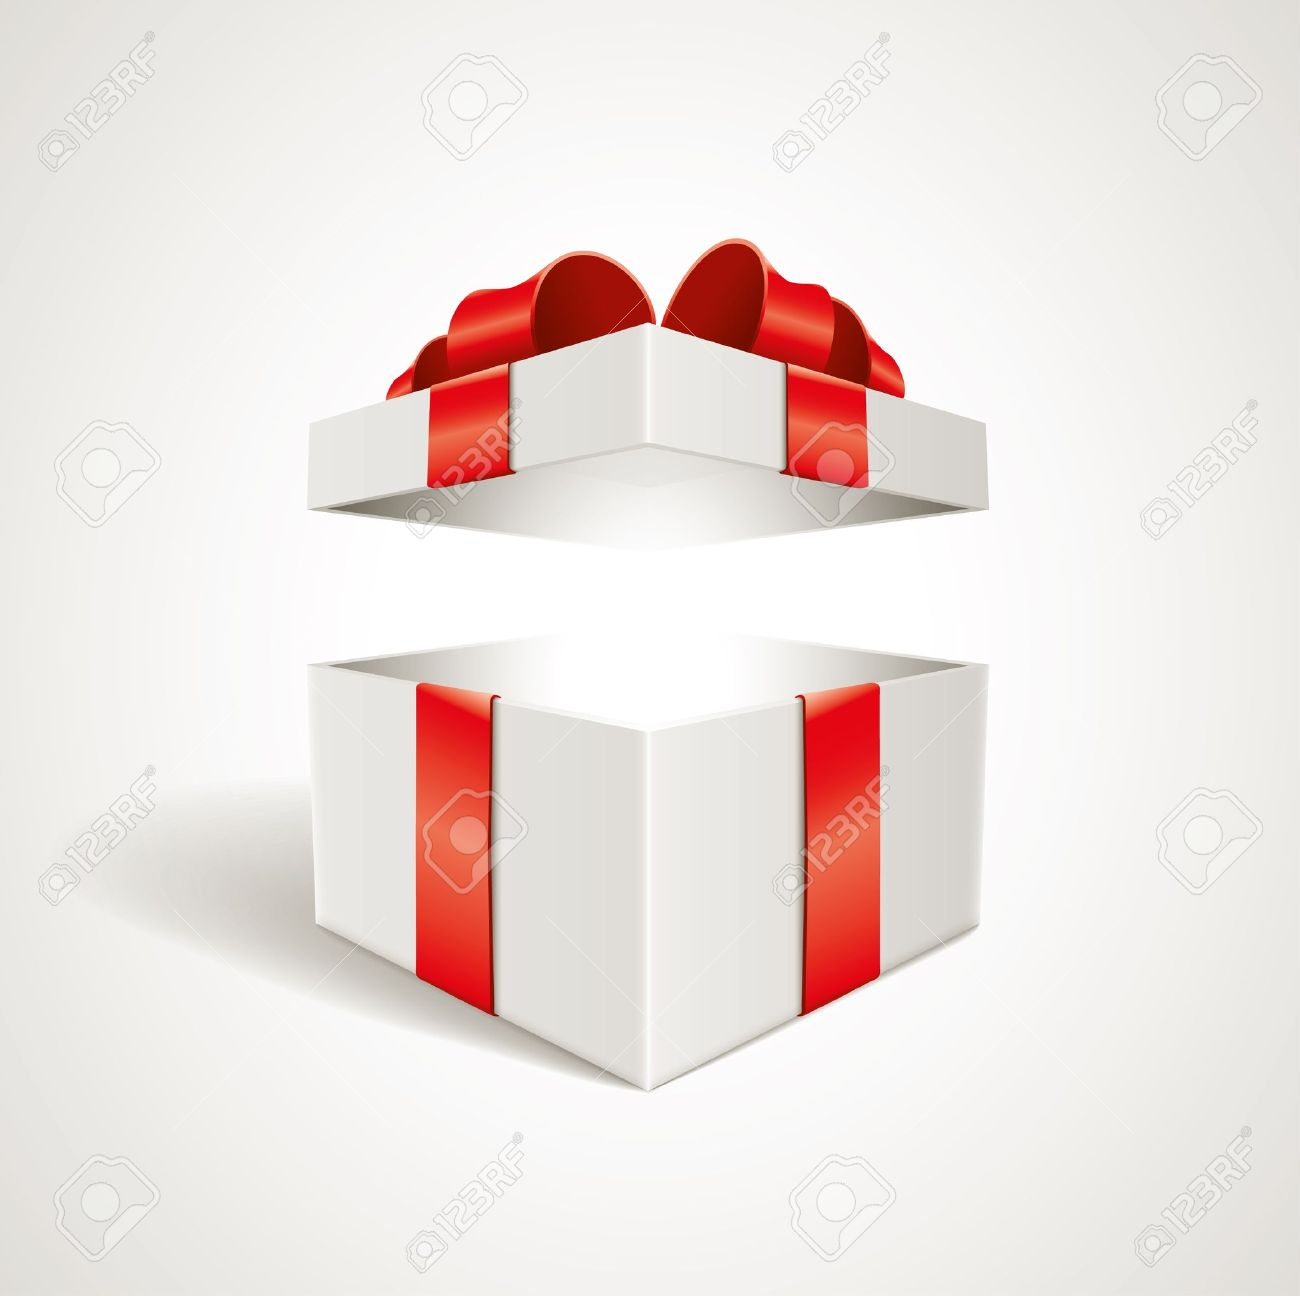 Vector open gift box illustration Elements are layered separately in vector file - 19379540